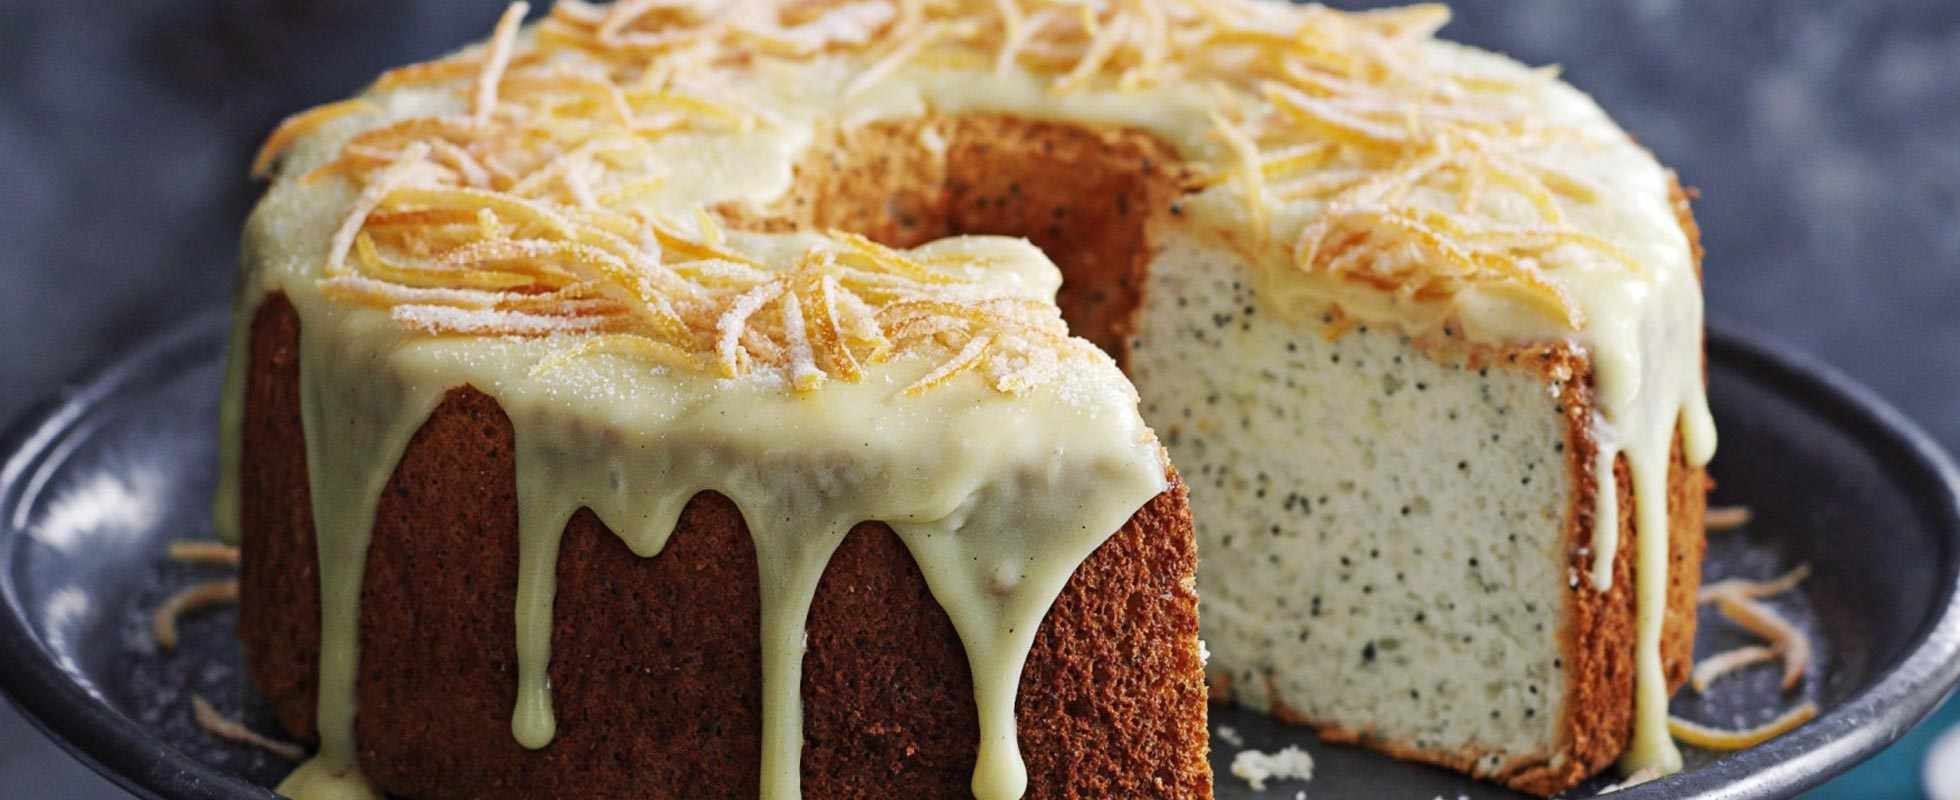 Grapefruit and poppy seed angel cake with white chocolate frosting